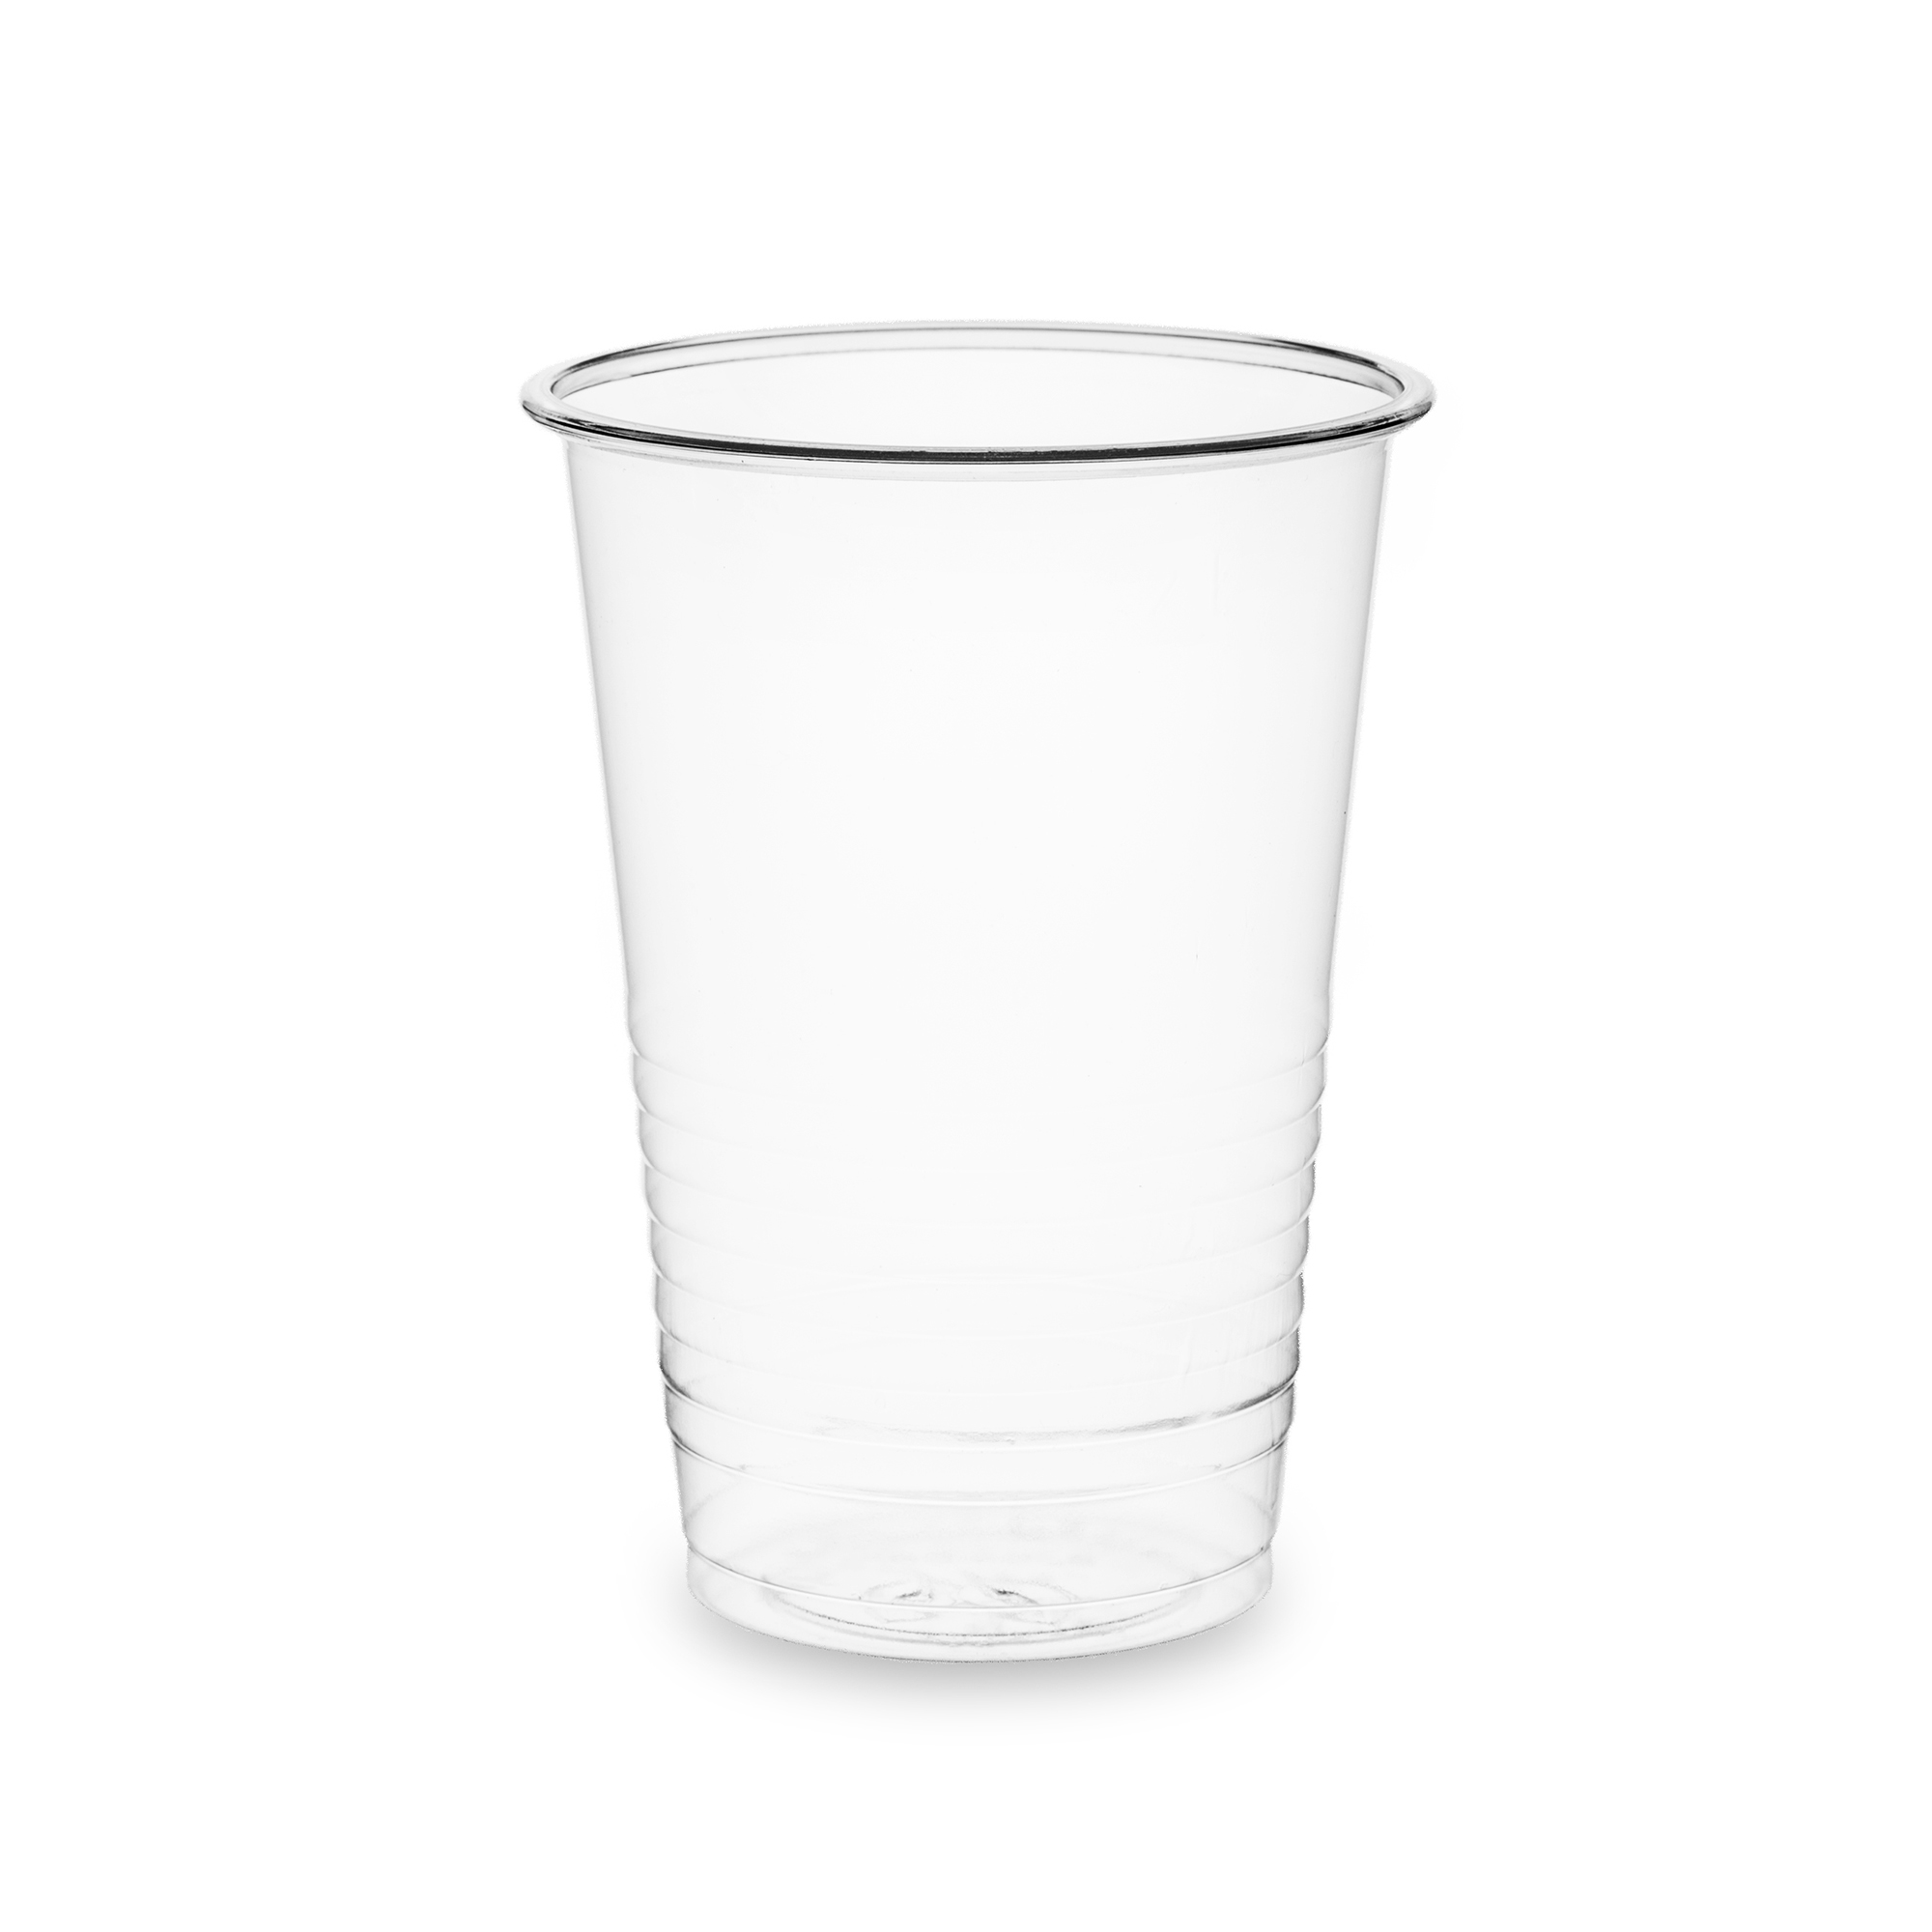 Disposable Cups & Accessories Vegware Water Cups 7oz PLA Clear Ref VWC-07 Pack 100